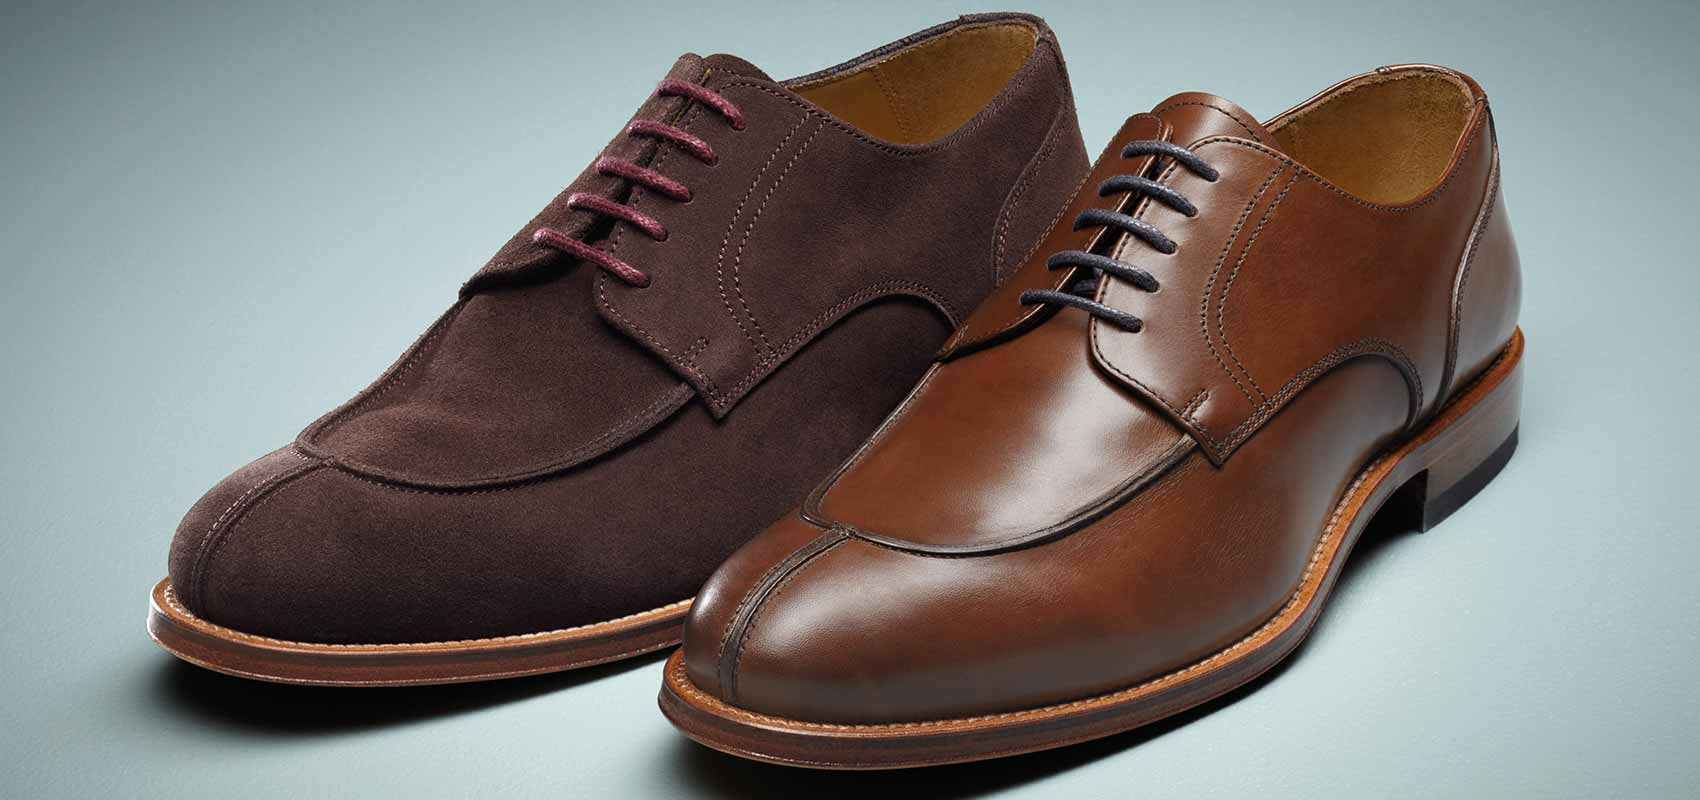 Charles Tyrwhitt brown shoes